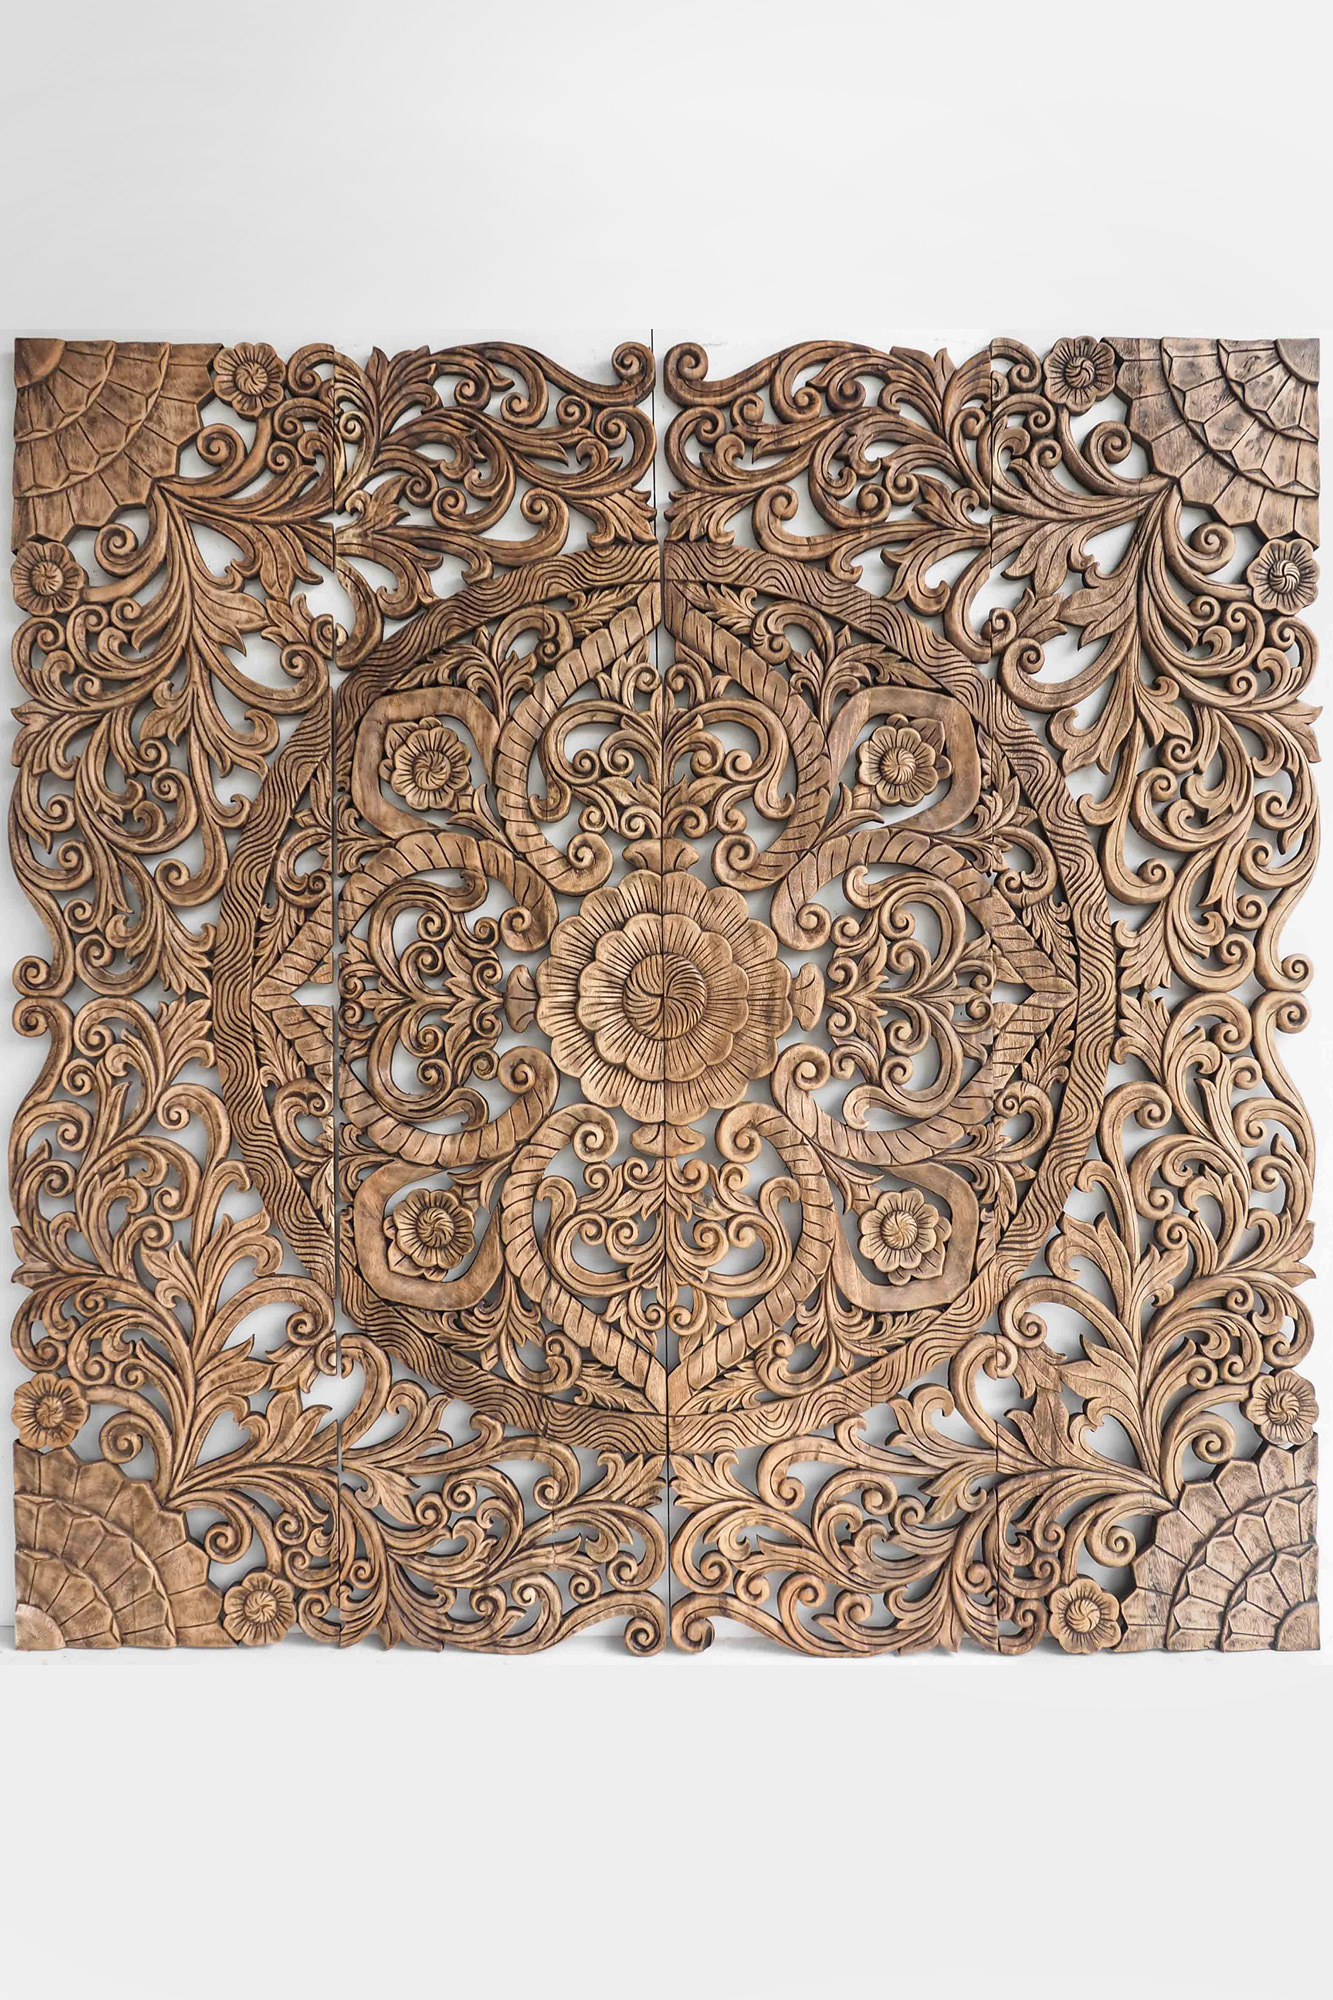 king size balinese bed headboard wood carving